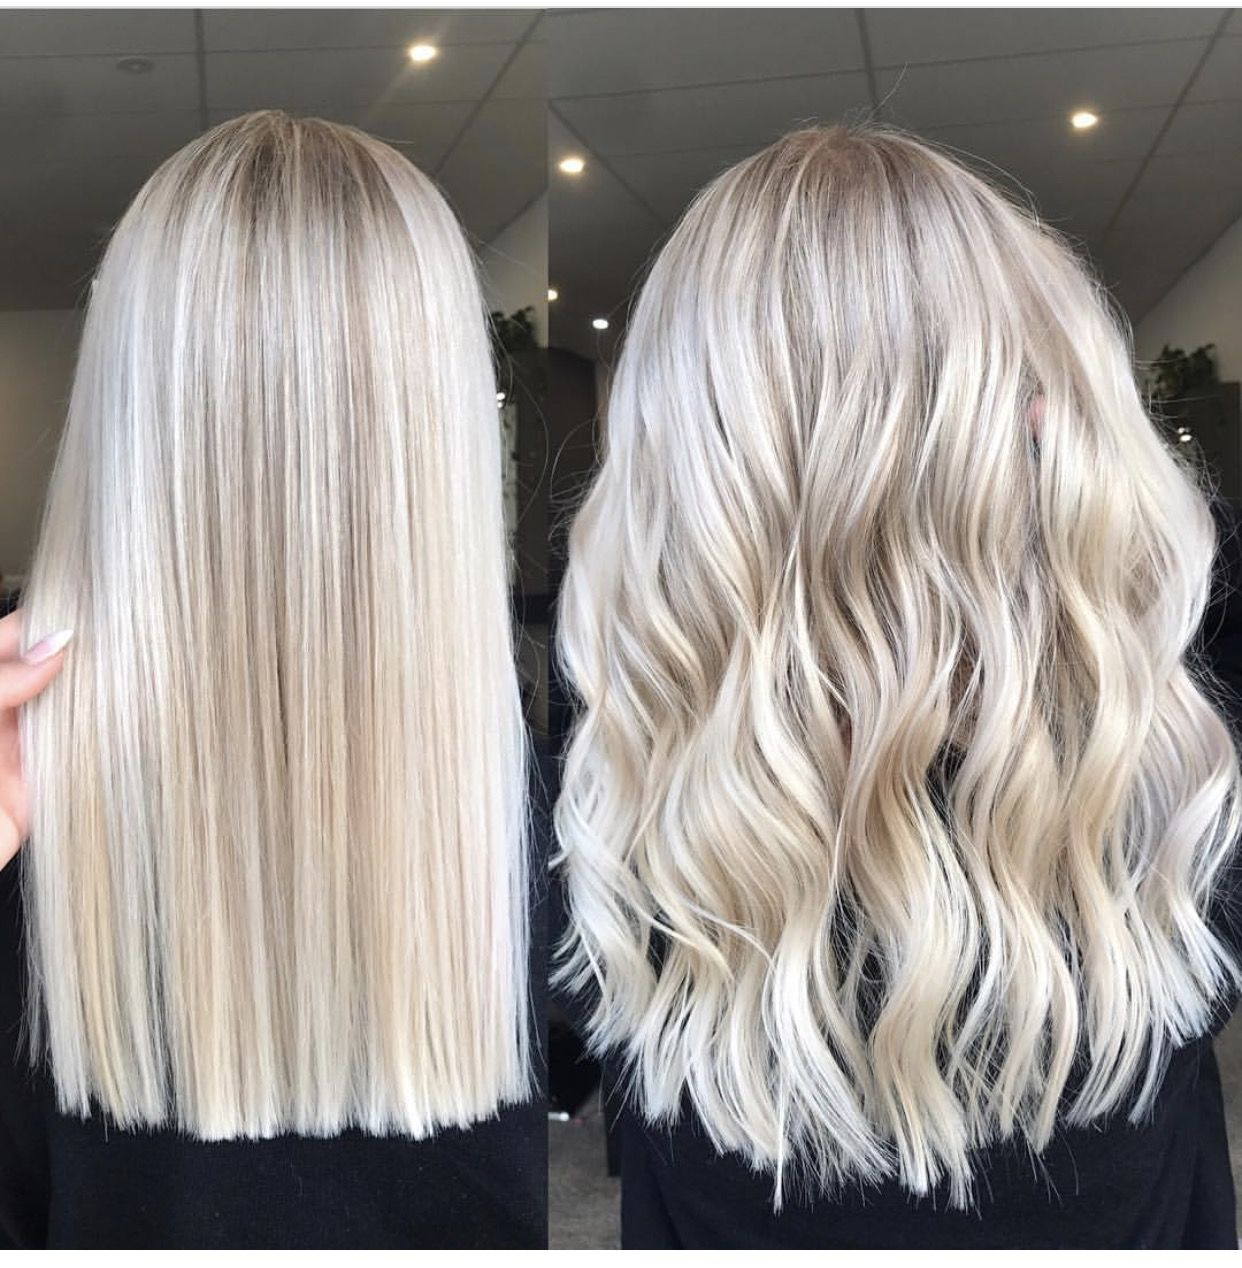 Pin by hailey brown on hair pinterest hair coloring hair style